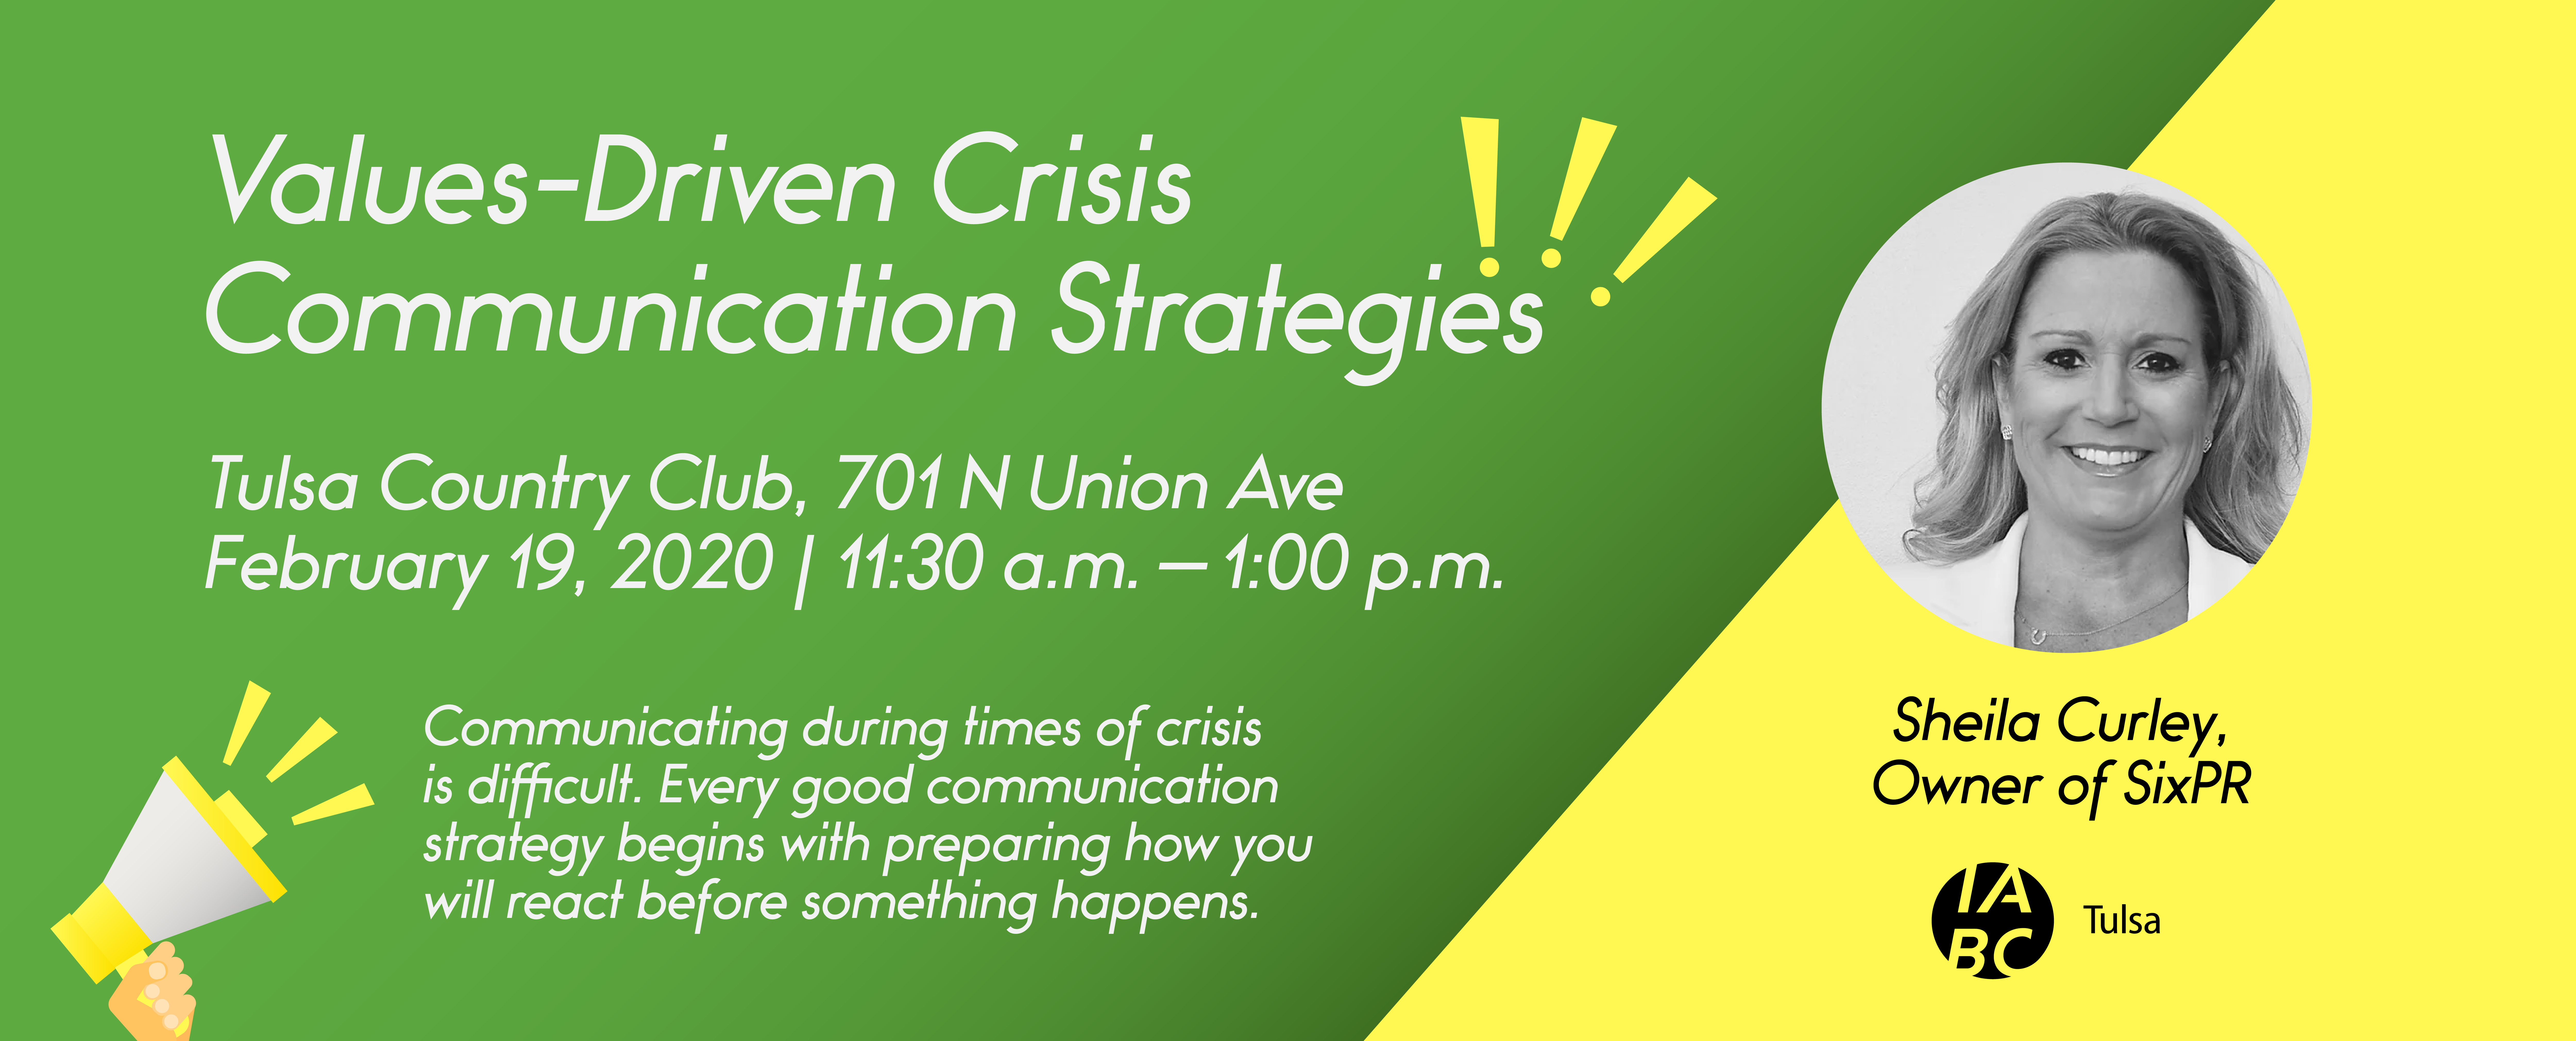 Values-Driven crisis communication Tulsa Country club, 701 N Union Ave Feb. 19, 2020 | 11:30 a.m. - 1 p.m. Communicating during time of crisis is difficult. Every good communication strategy begins with preparing how you will react before something happens. Sheila Curley, Owner of SixPR